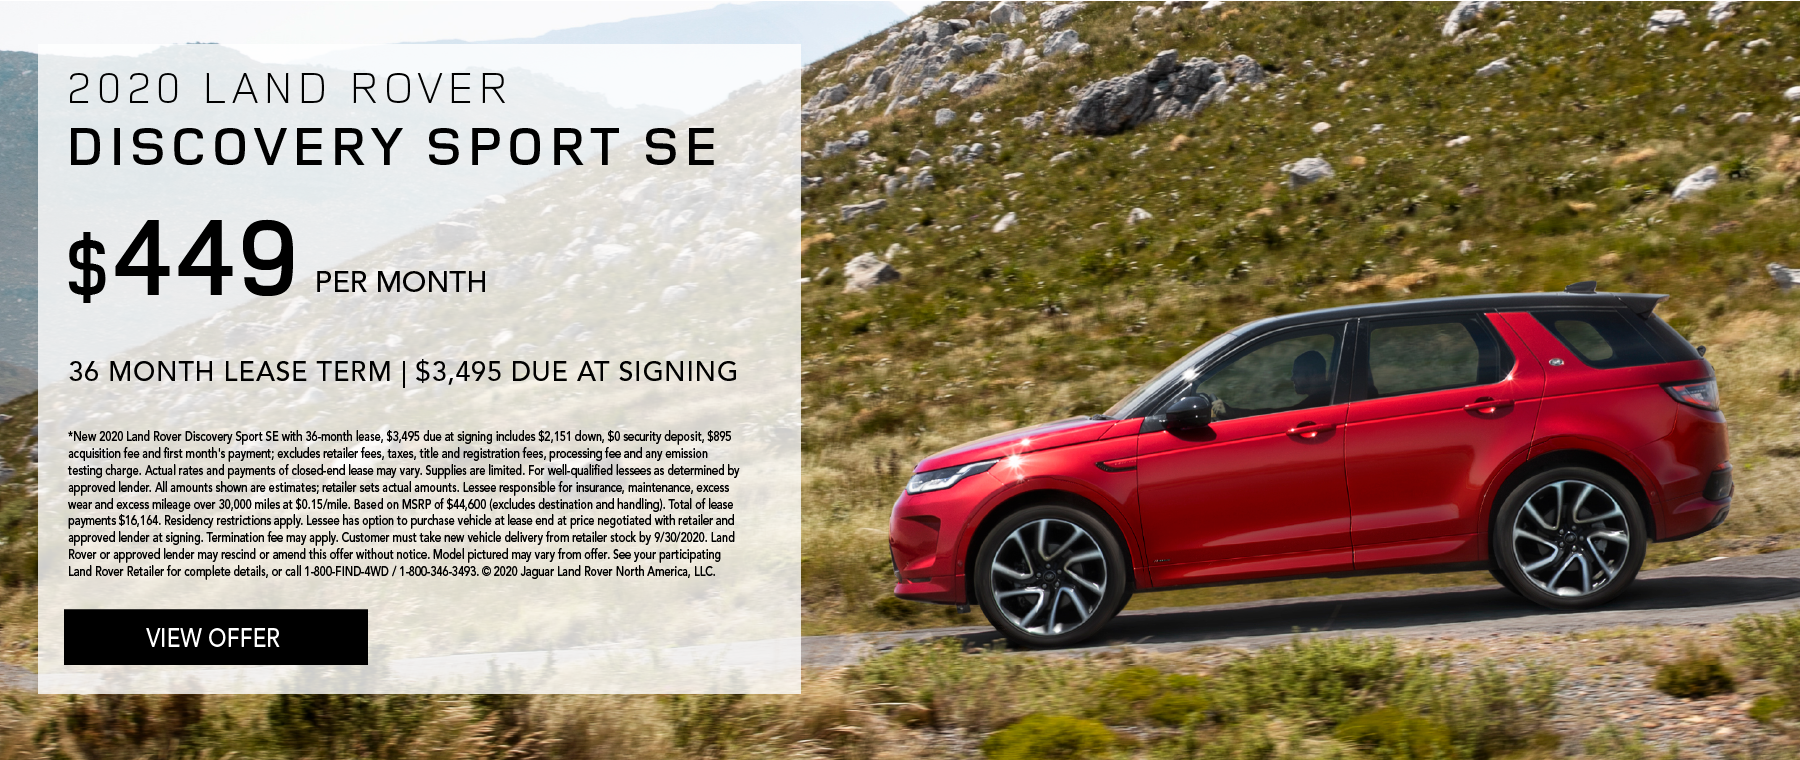 2020 LAND ROVER DISCOVERY SPORT SE. $449 PER MONTH. 36 MONTH LEASE TERM. $3,495 CASH DUE AT SIGNING. $0 SECURITY DEPOSIT. 10,000 MILES PER YEAR. EXCLUDES RETAILER FEES, TAXES, TITLE AND REGISTRATION FEES, PROCESSING FEE AND ANY EMISSION TESTING CHARGE. ENDS 9/30/2020.